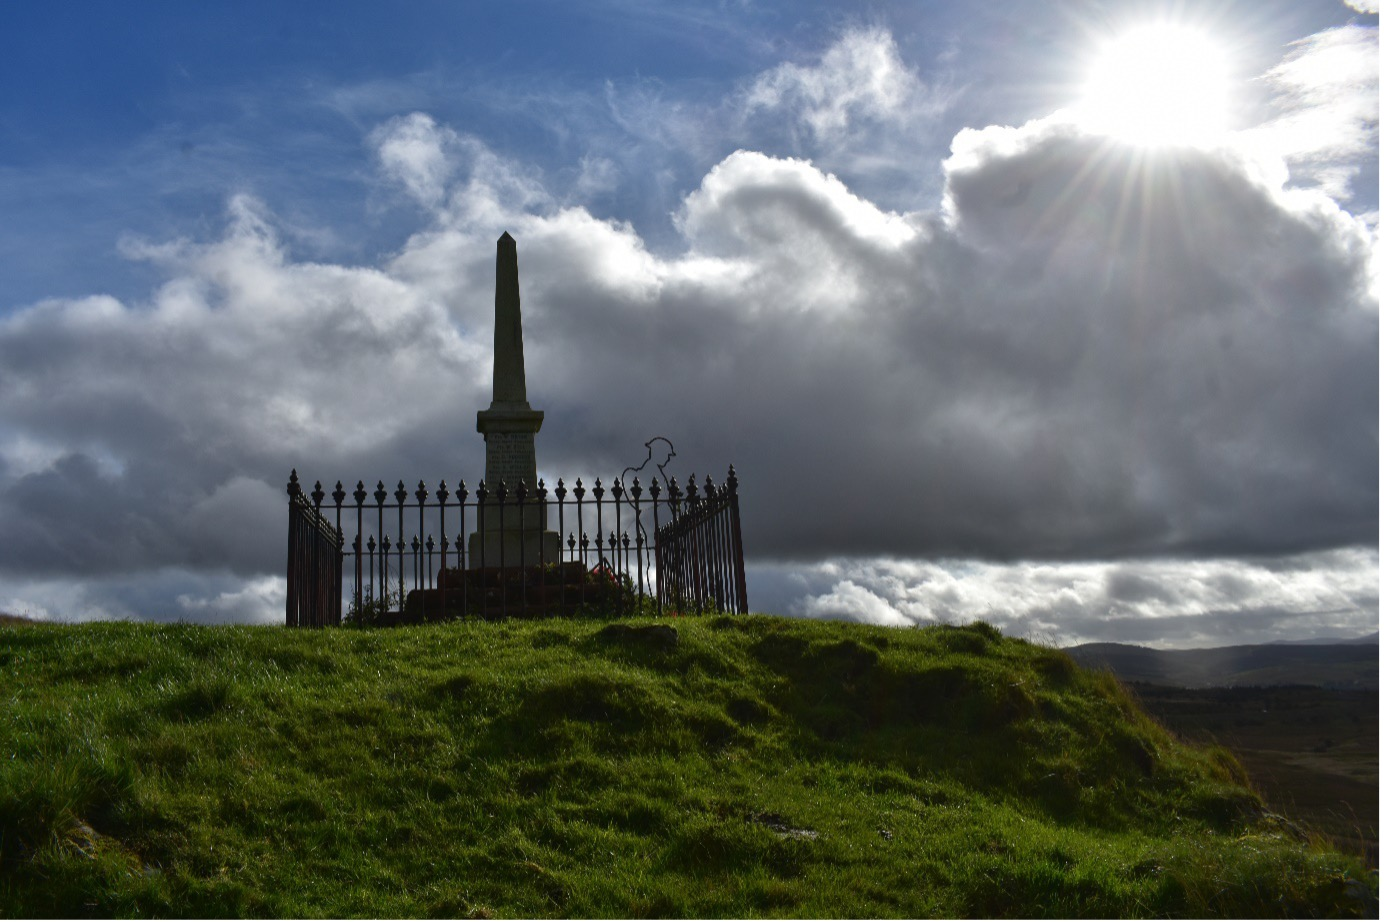 An obelisk shaped war memorial at Benwhat village Ayrshire.  On a grass hill, with railing around the monument, silhouette of a Tommy solder next to he momument with a cloudy, blue sky and son in the top left hand corner